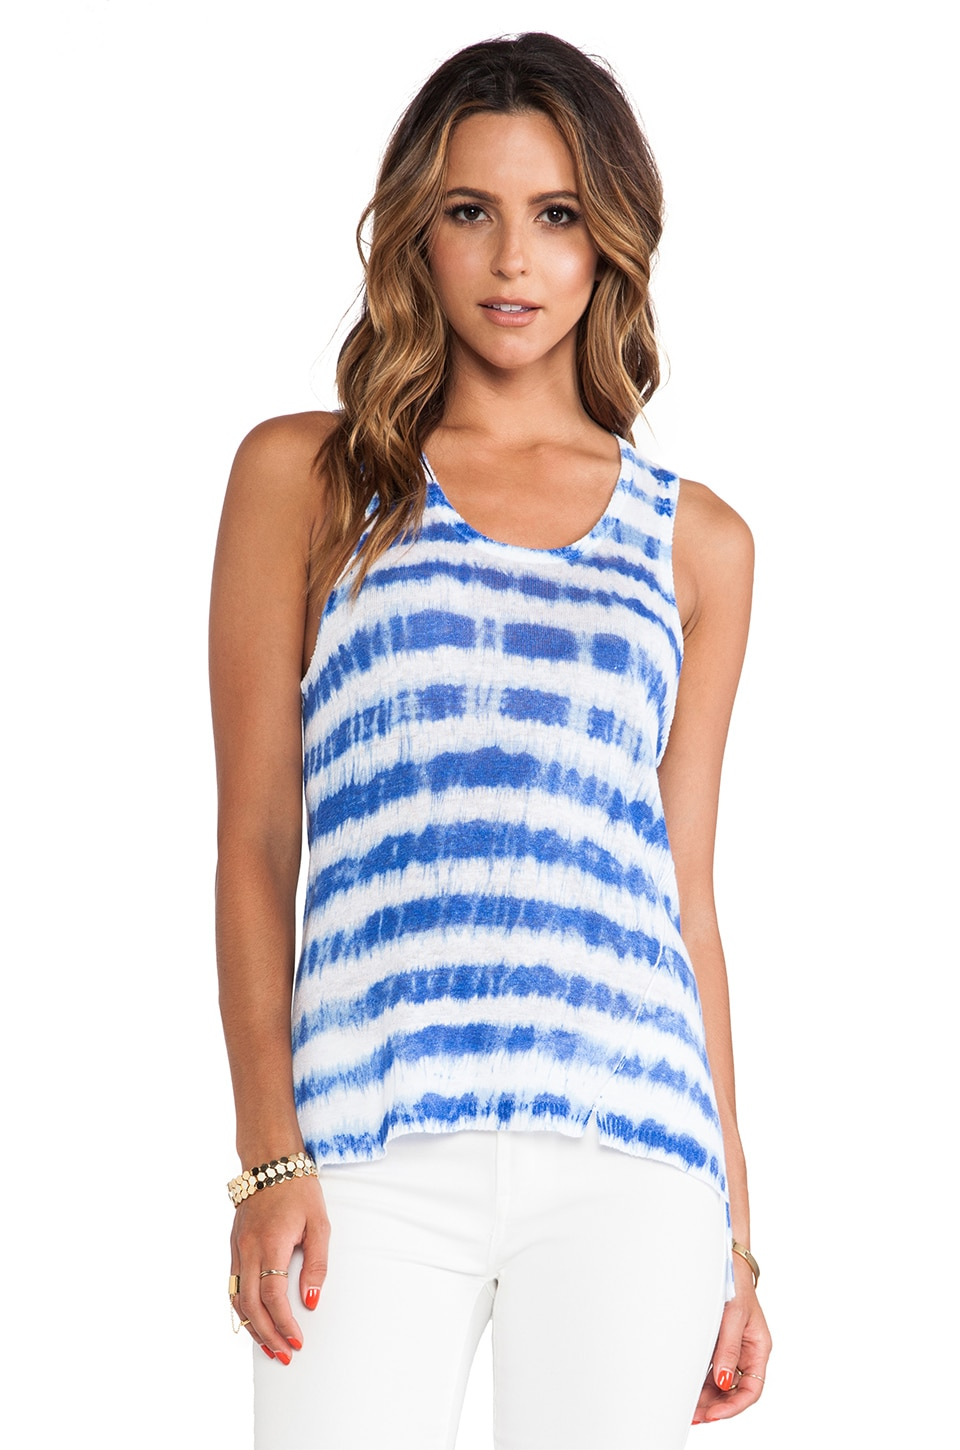 Central Park West Provence Tank in Blueberry